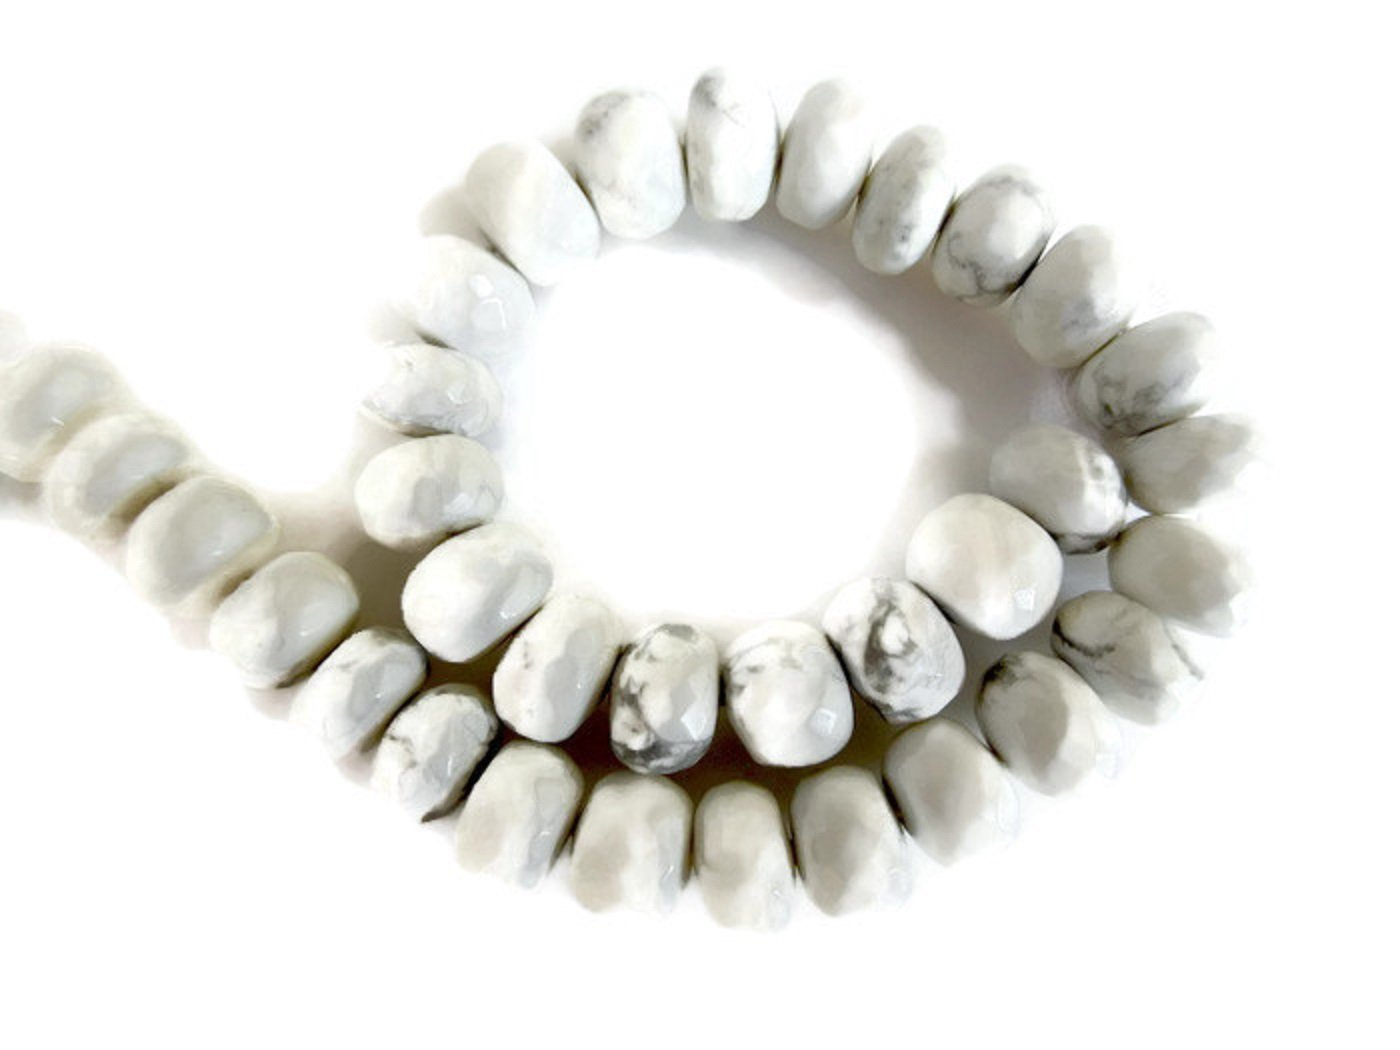 Natural White Howlite Faceted Rondelles Beads, 9mm Howlite Beads, Howlite Gemstone beads, Howlite Jewelry, GDS923 (5 Strands, 150pcs)